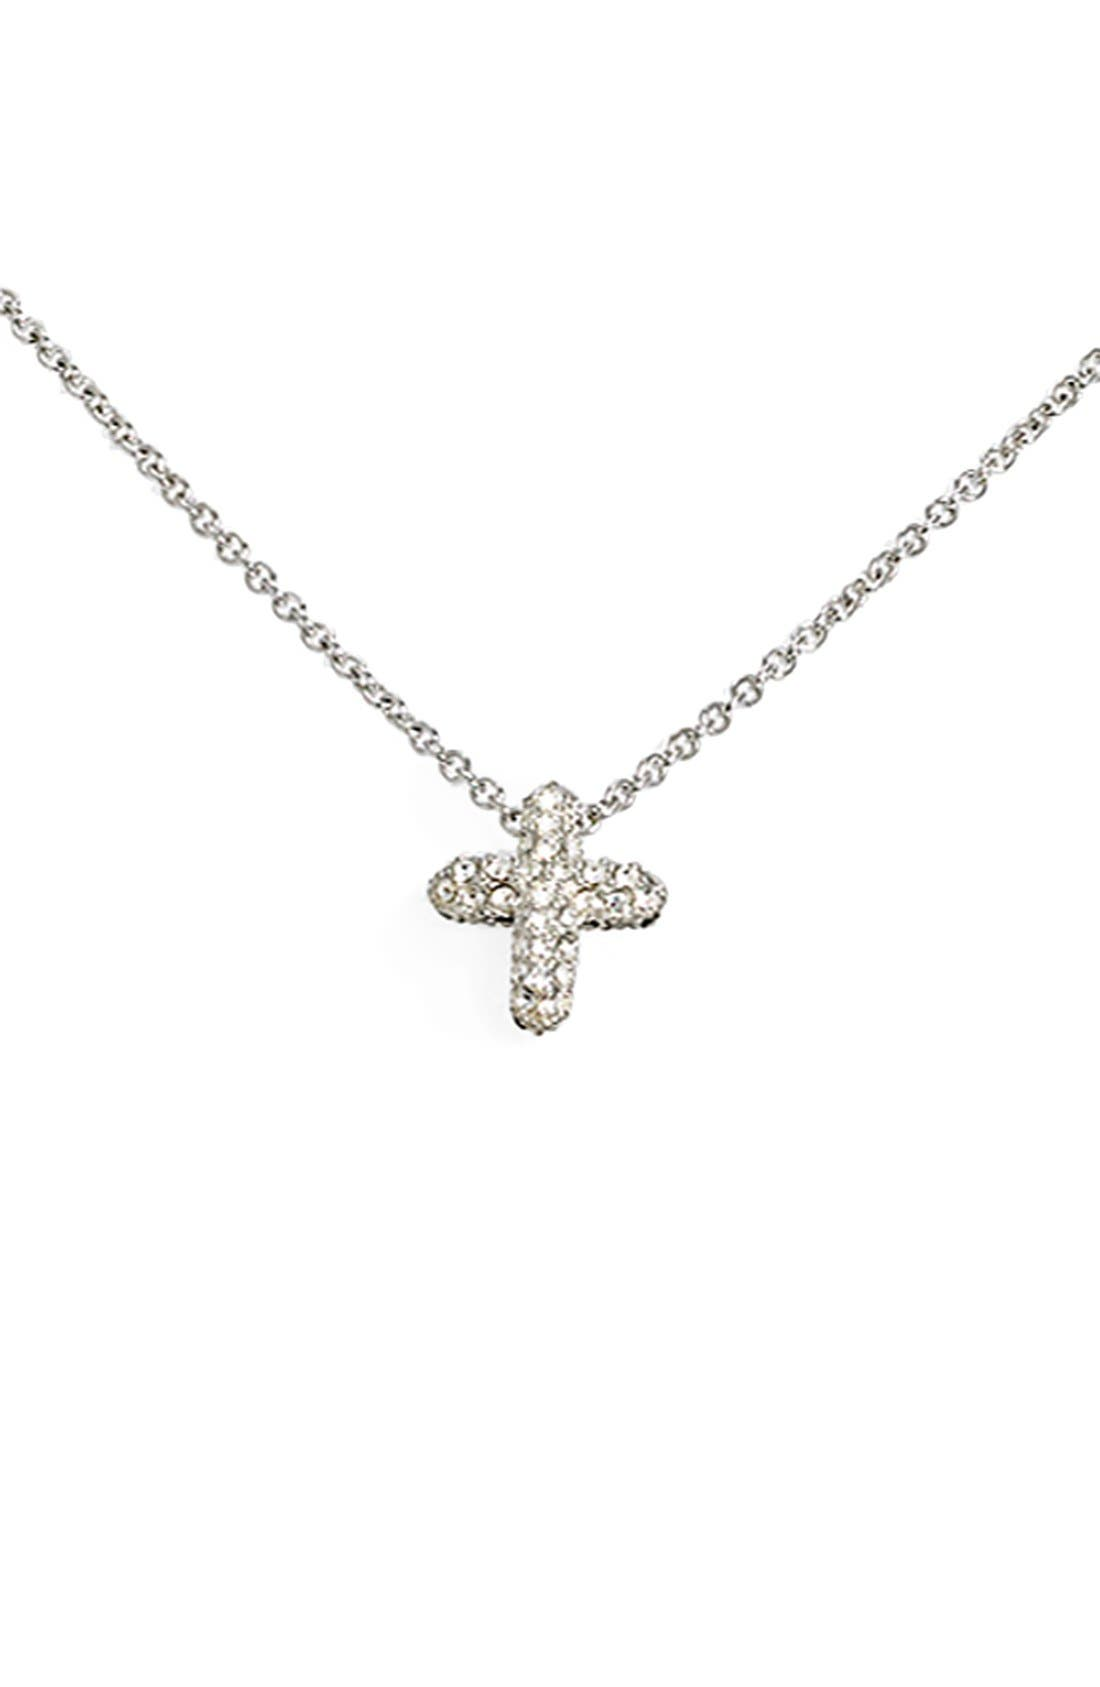 Reversible Pavé Cross Pendant Necklace,                         Main,                         color, Cross